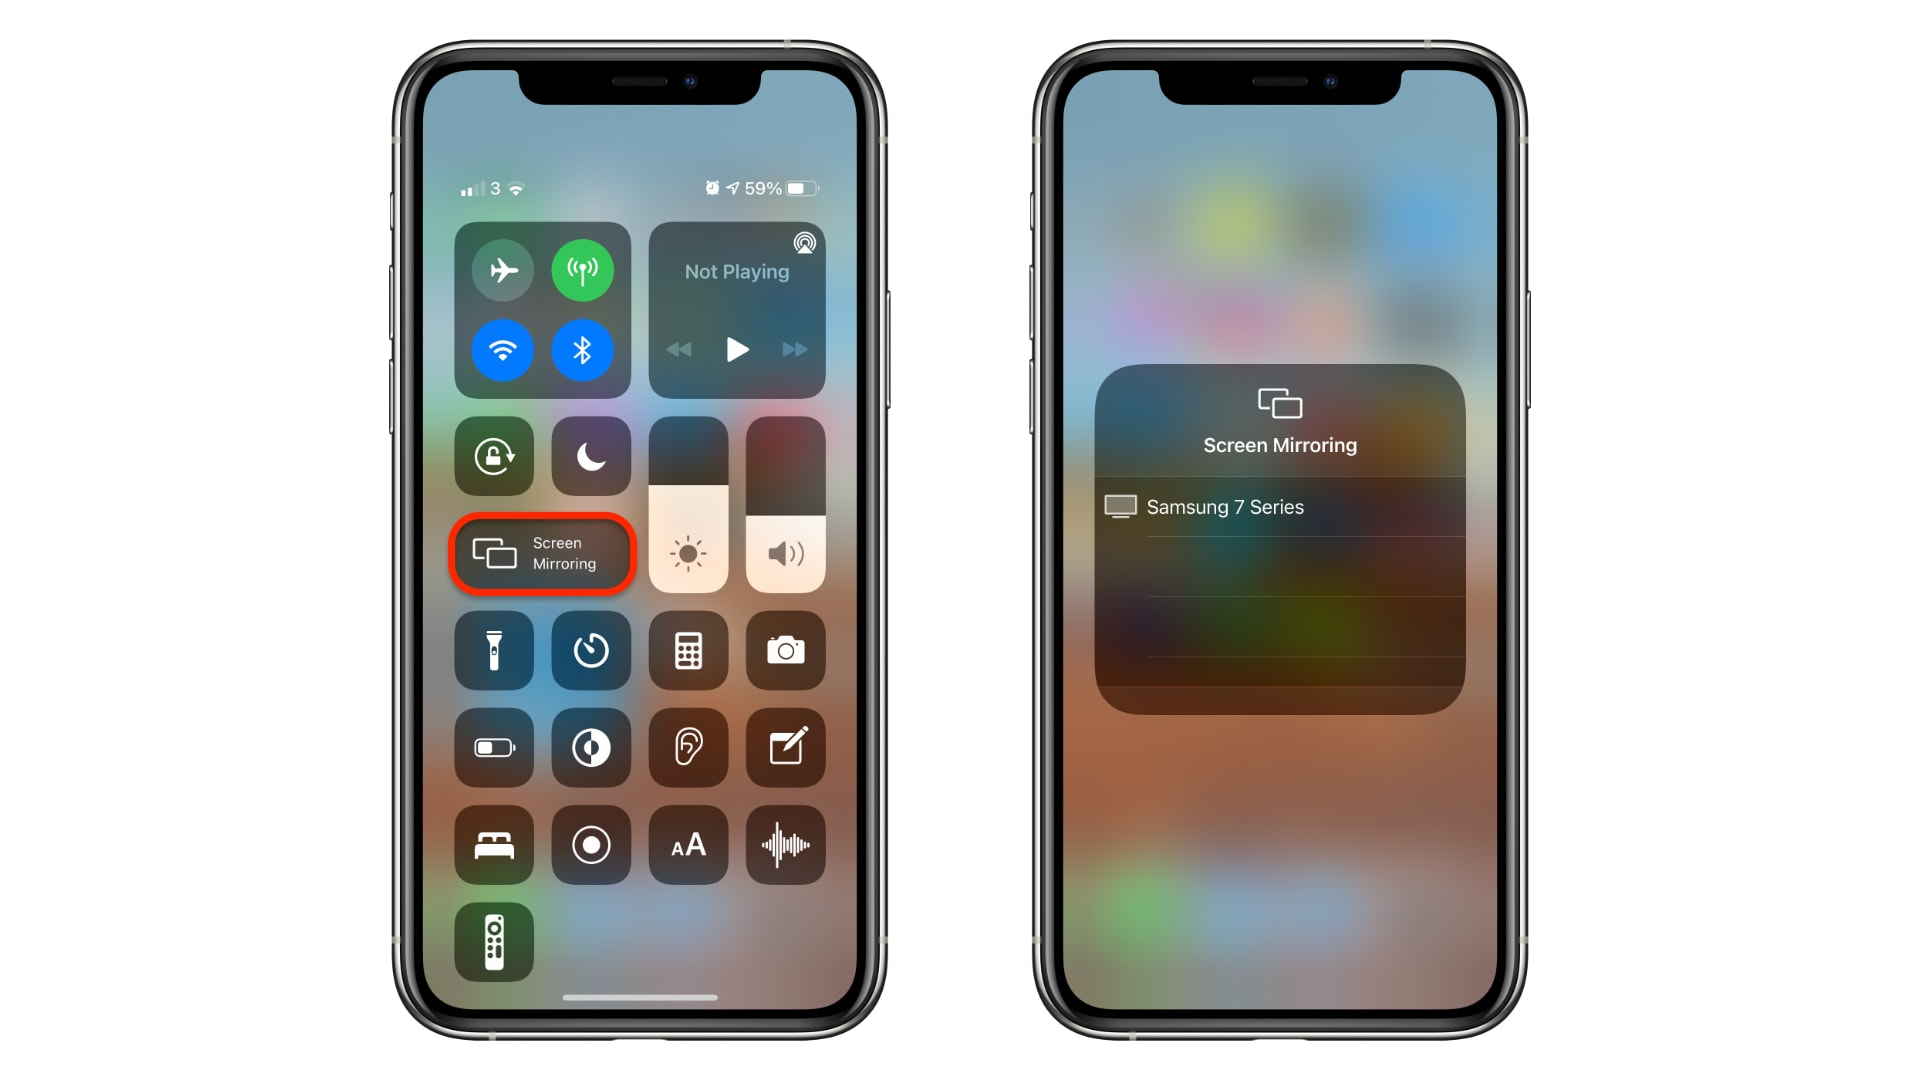 How to start screen mirroring with Control Center